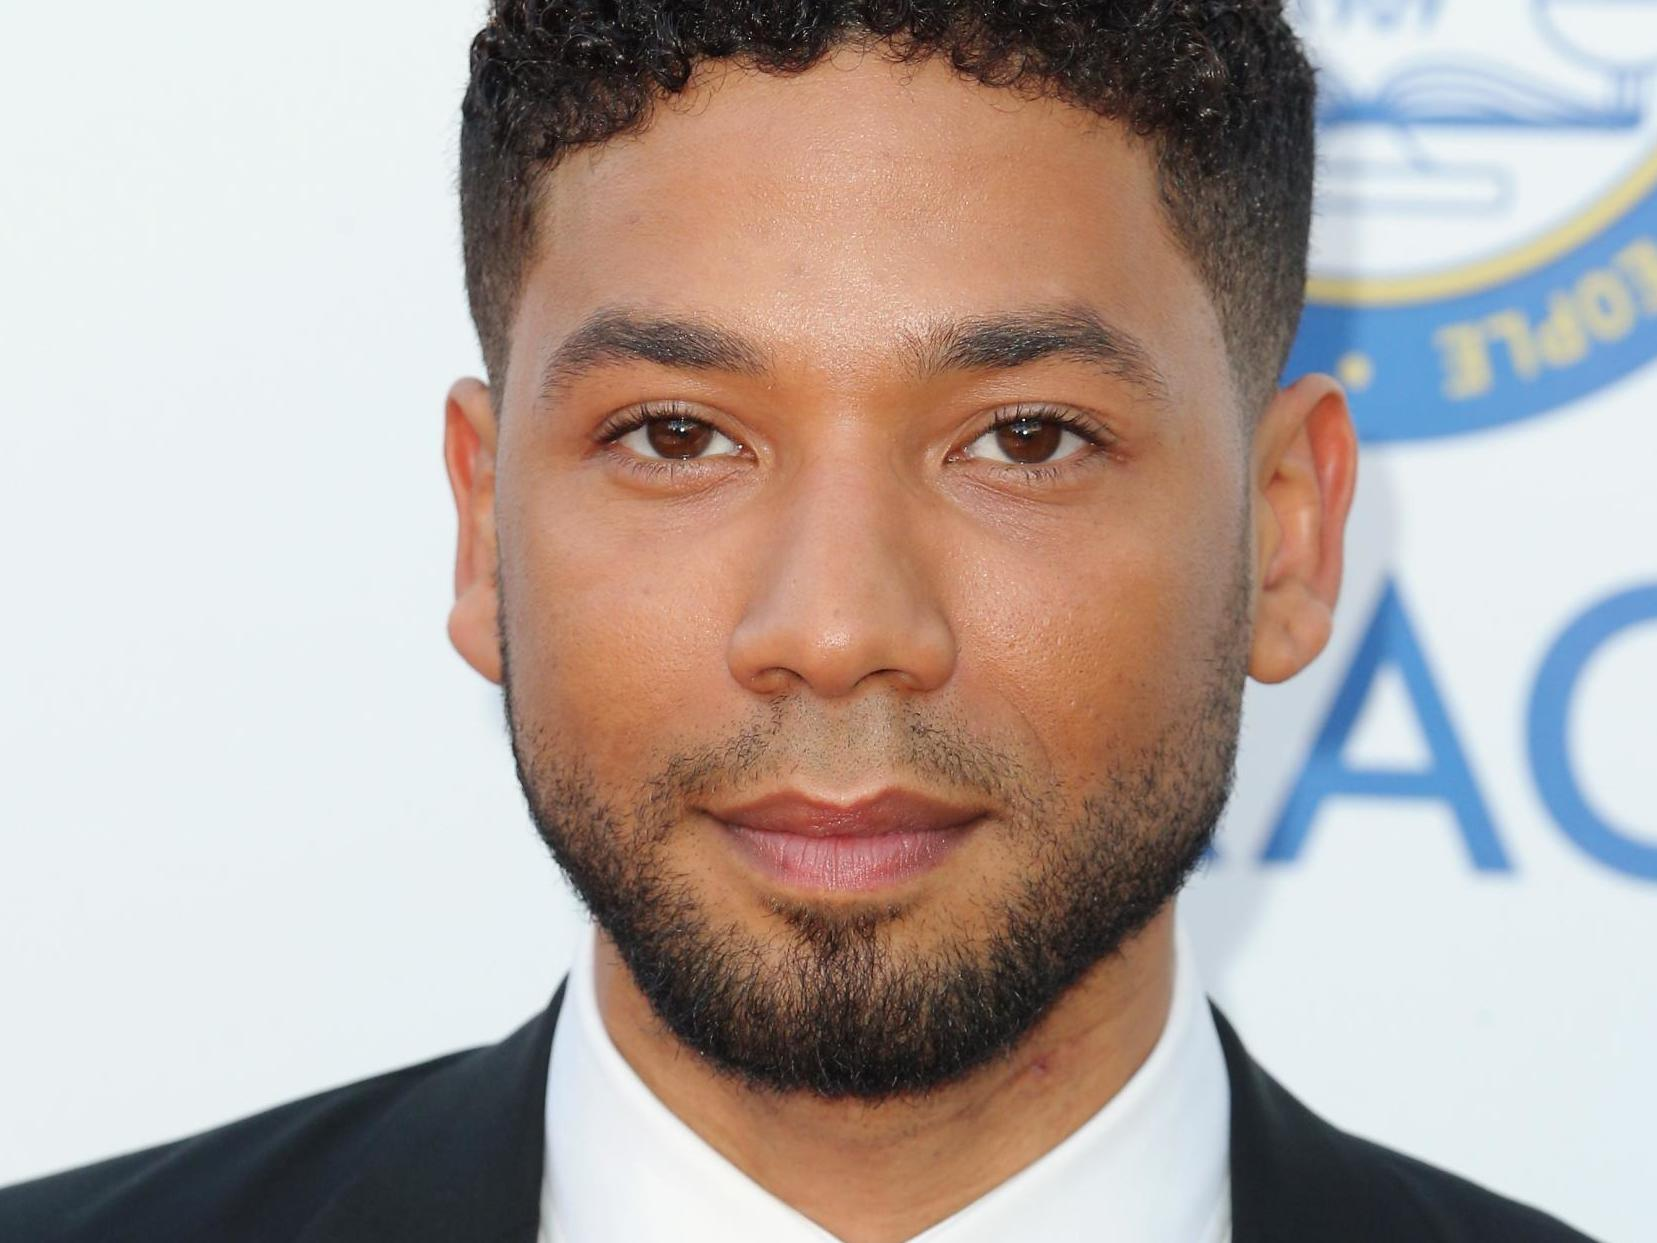 Jussie Smollett 'angered' as police suspect Empire star might have orchestrated own attack